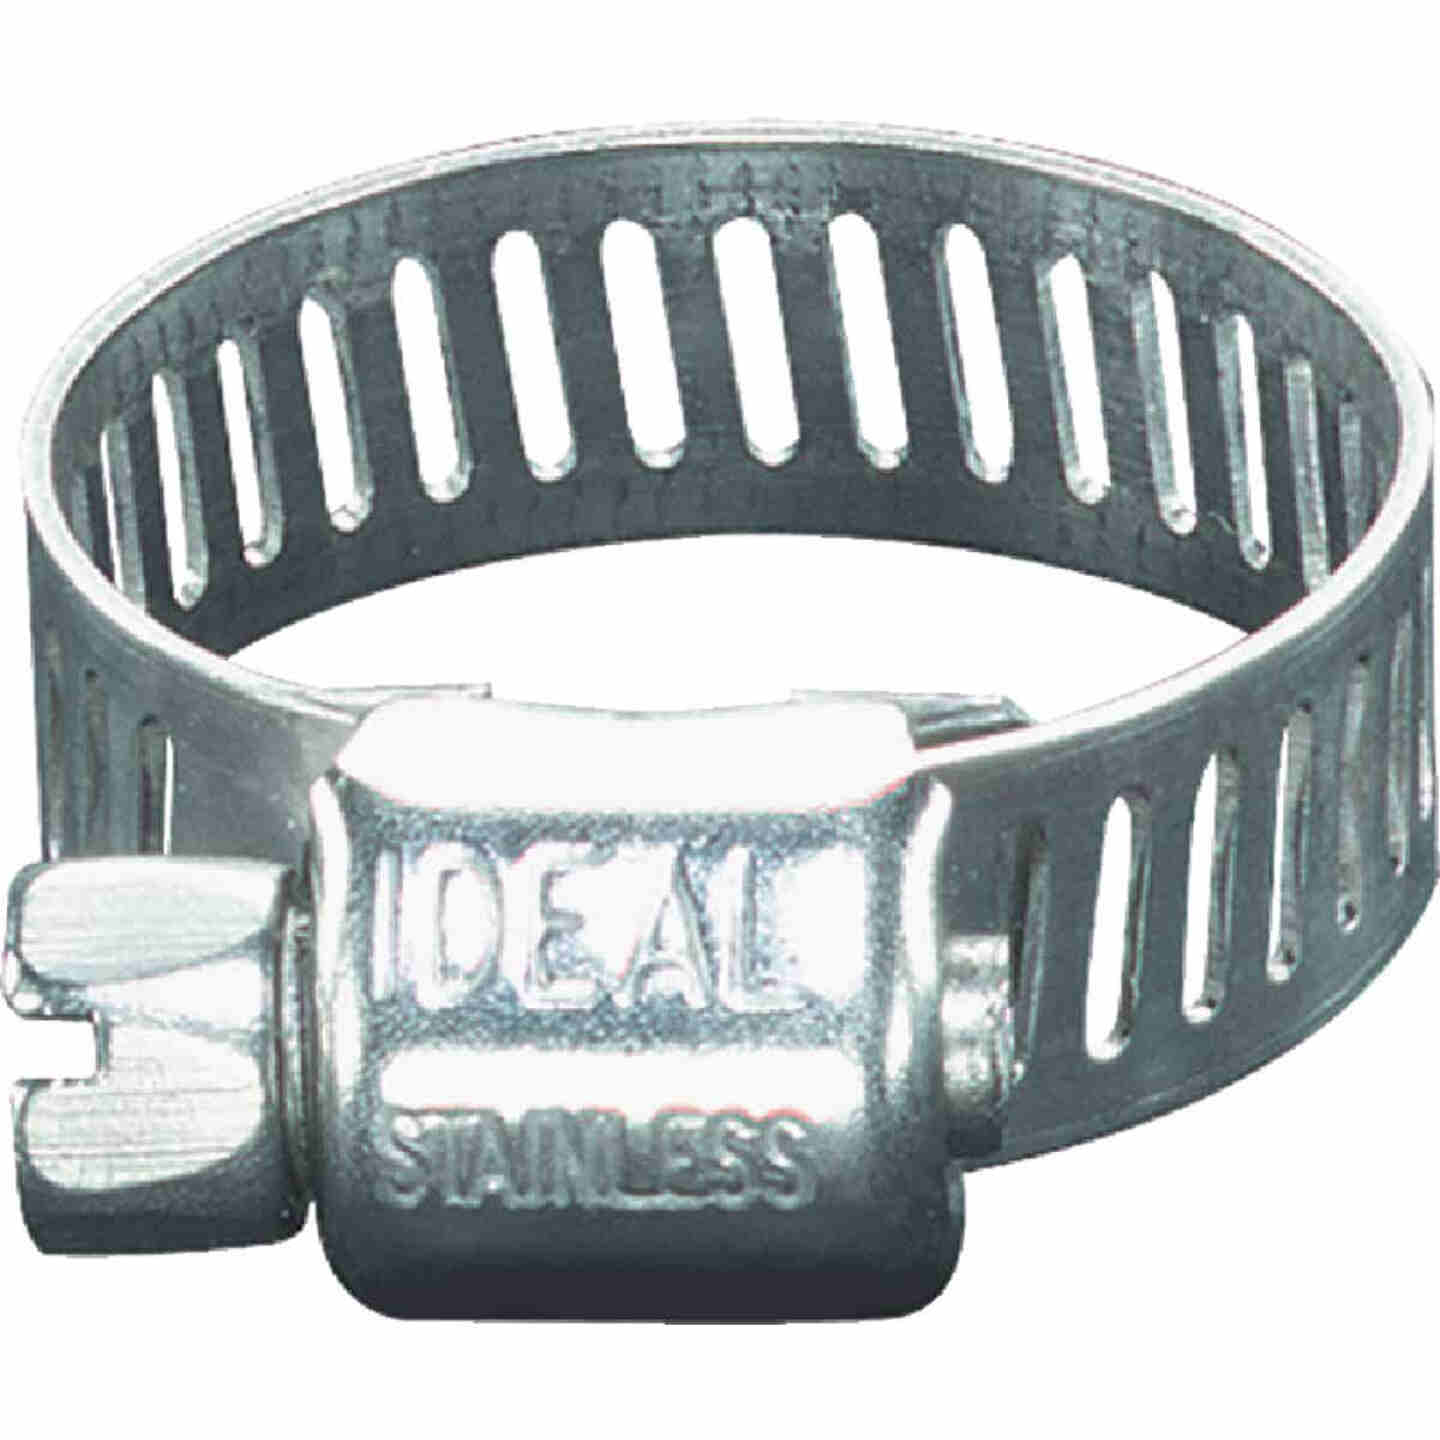 Ideal 5/16 In. - 5/8 In. Stainless Steel Micro-Gear Hose Clamp w/Zinc-Plated Carbon Steel Screw Image 1